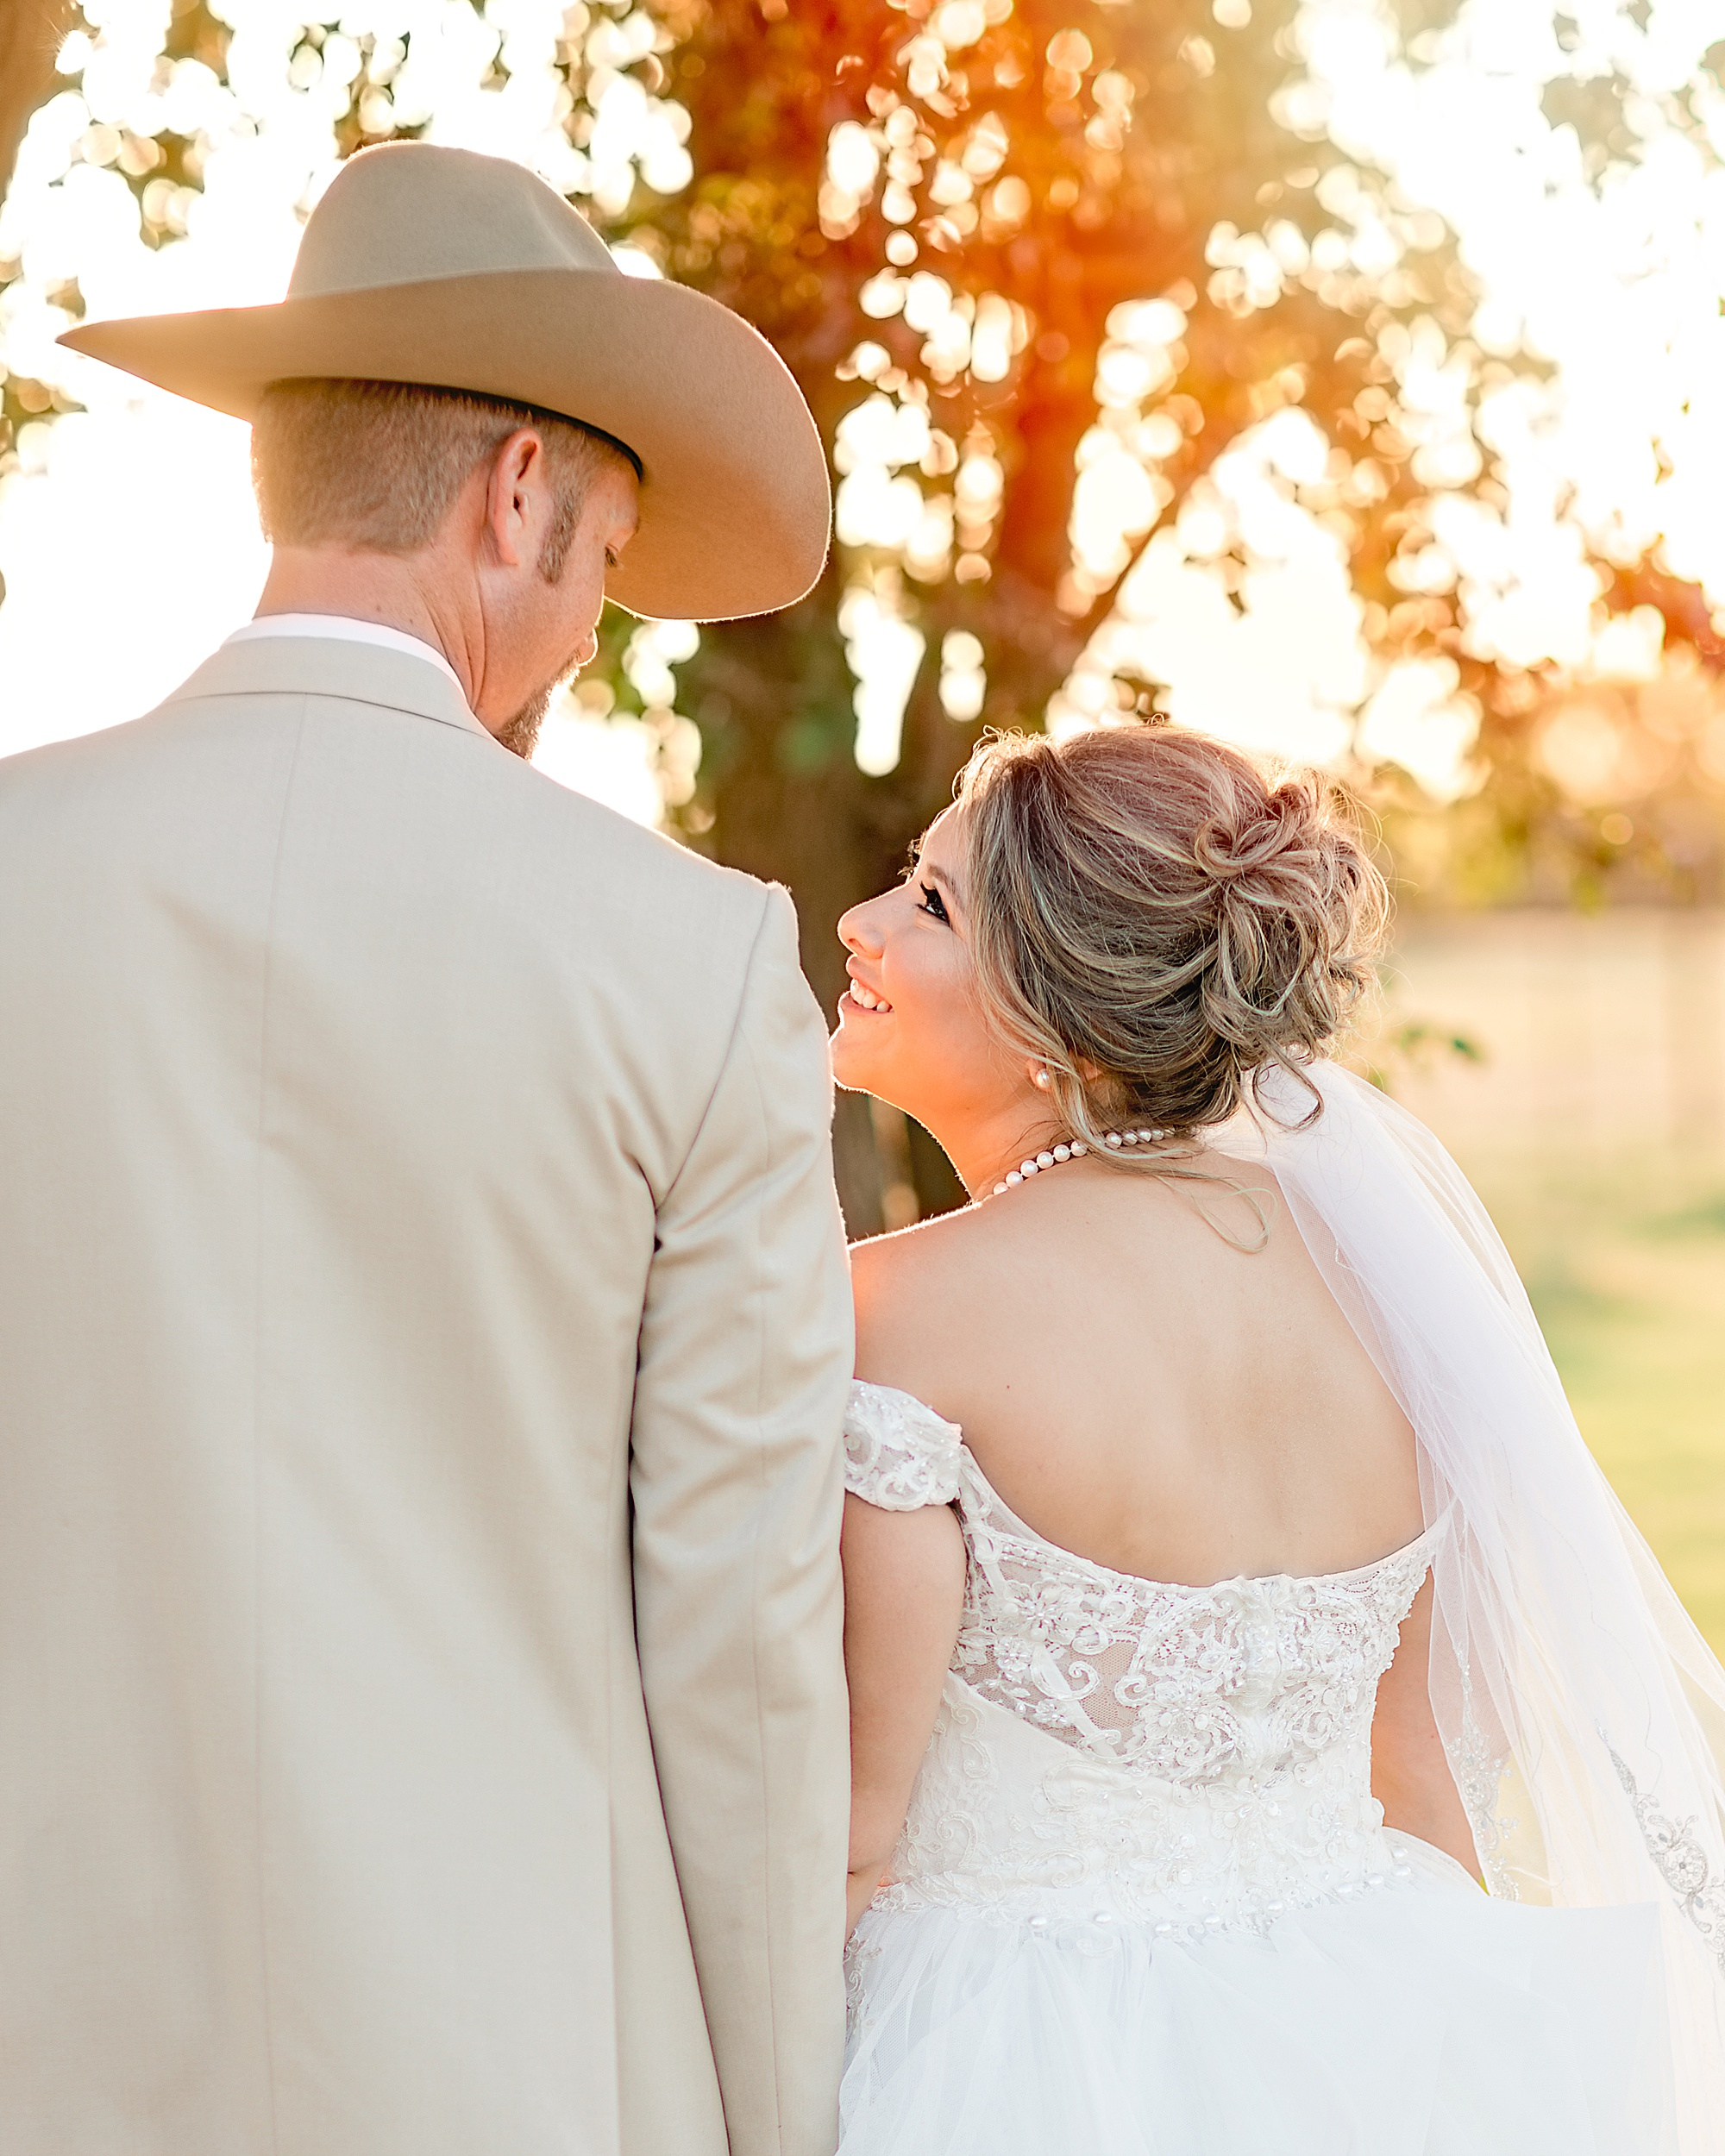 Wedding-Photographer-Rustic-Sunflower-theme-Texas-Carly-Barton-Photography_0120.jpg